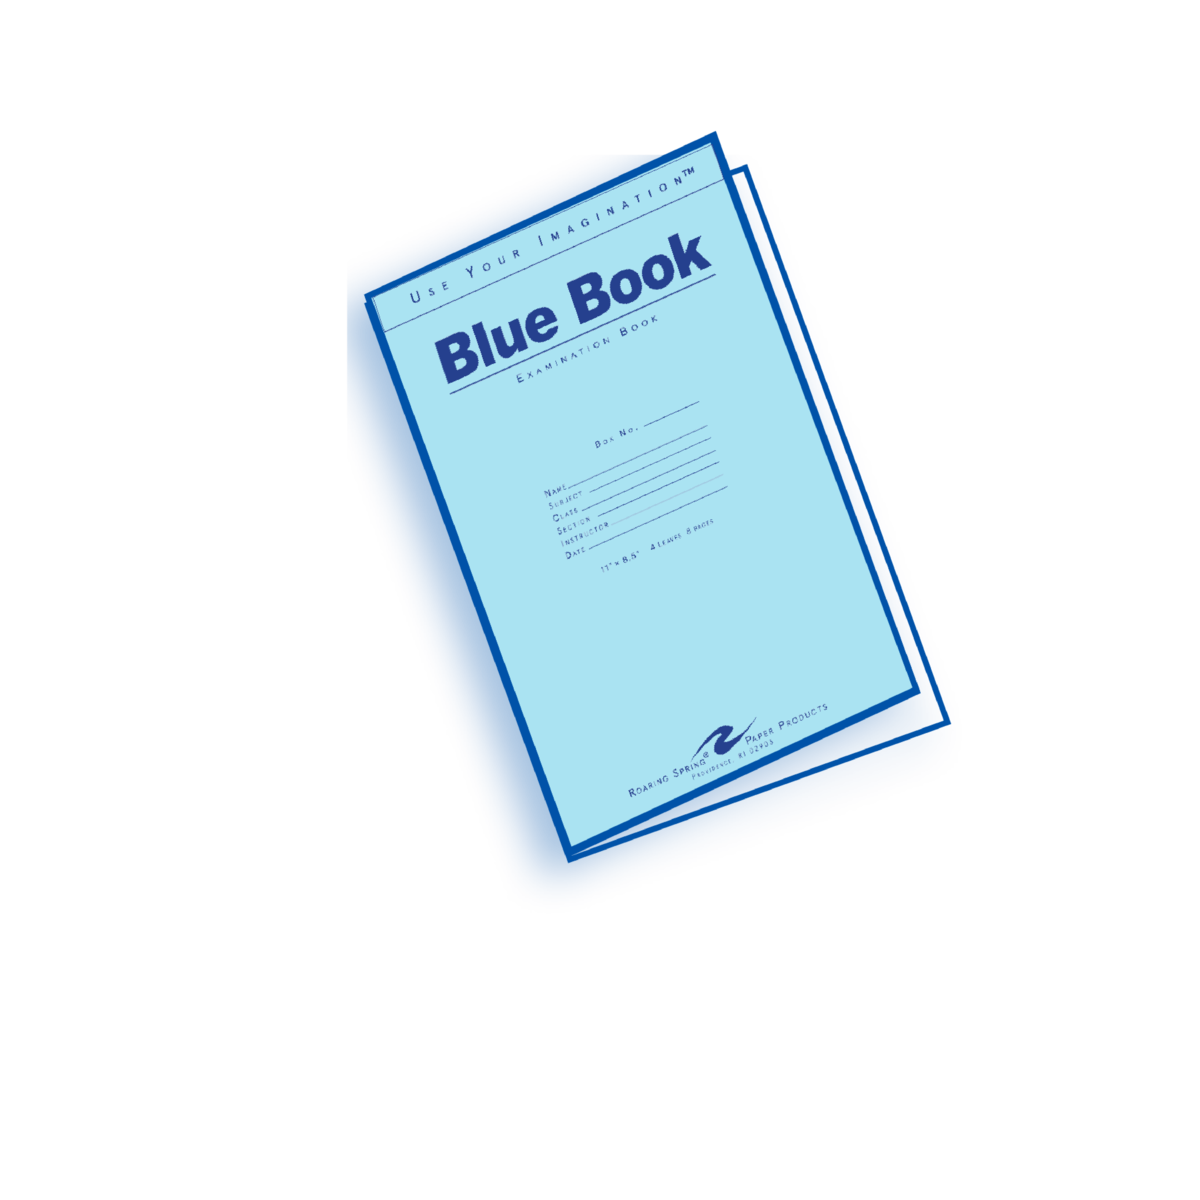 001 Blue Book Essay Example 1200px Magnificent Little Writing Full